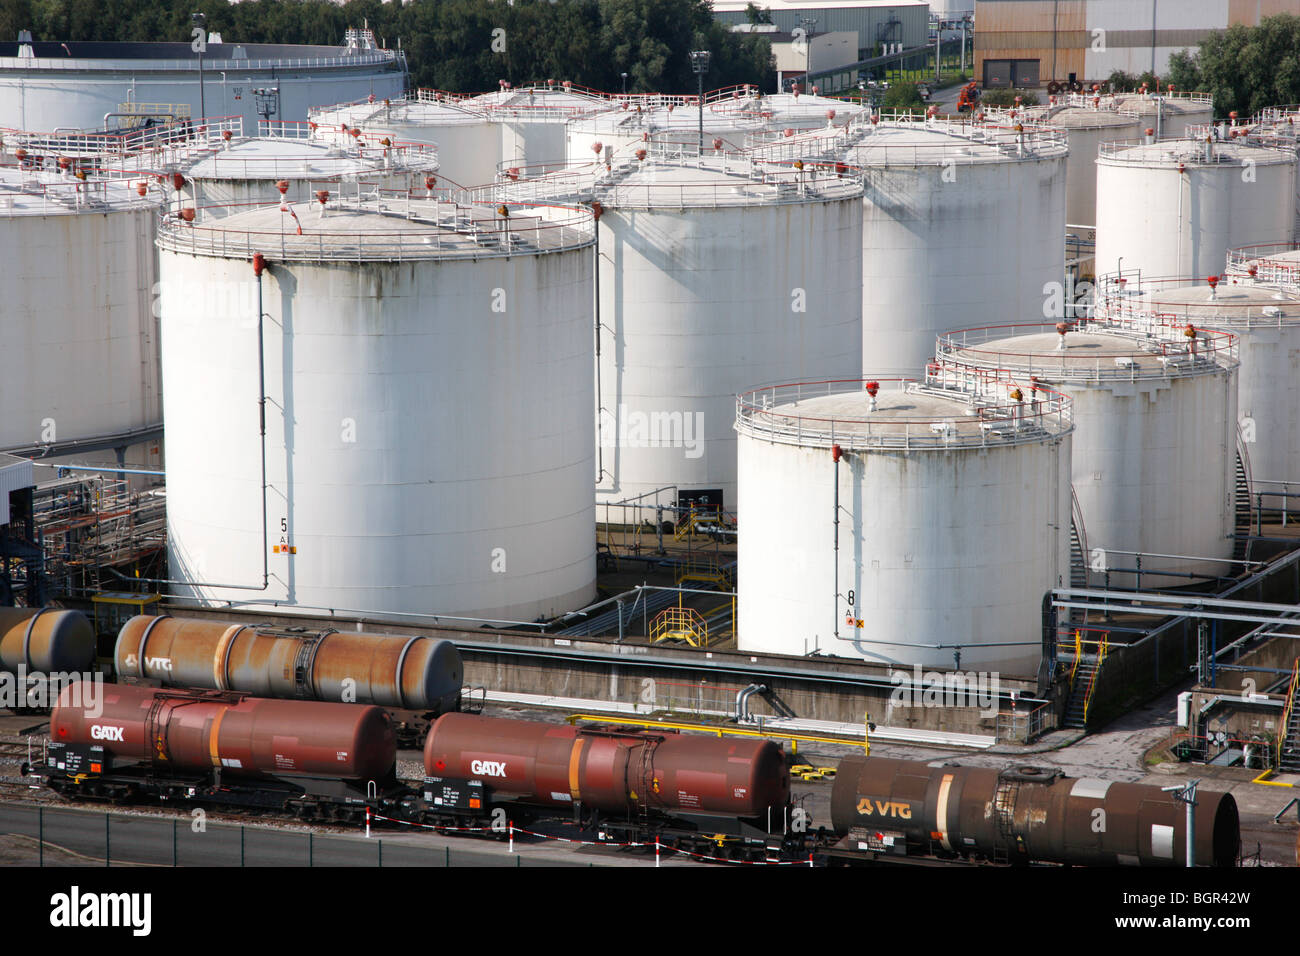 Oil Storage Tank Stock Photos & Oil Storage Tank Stock